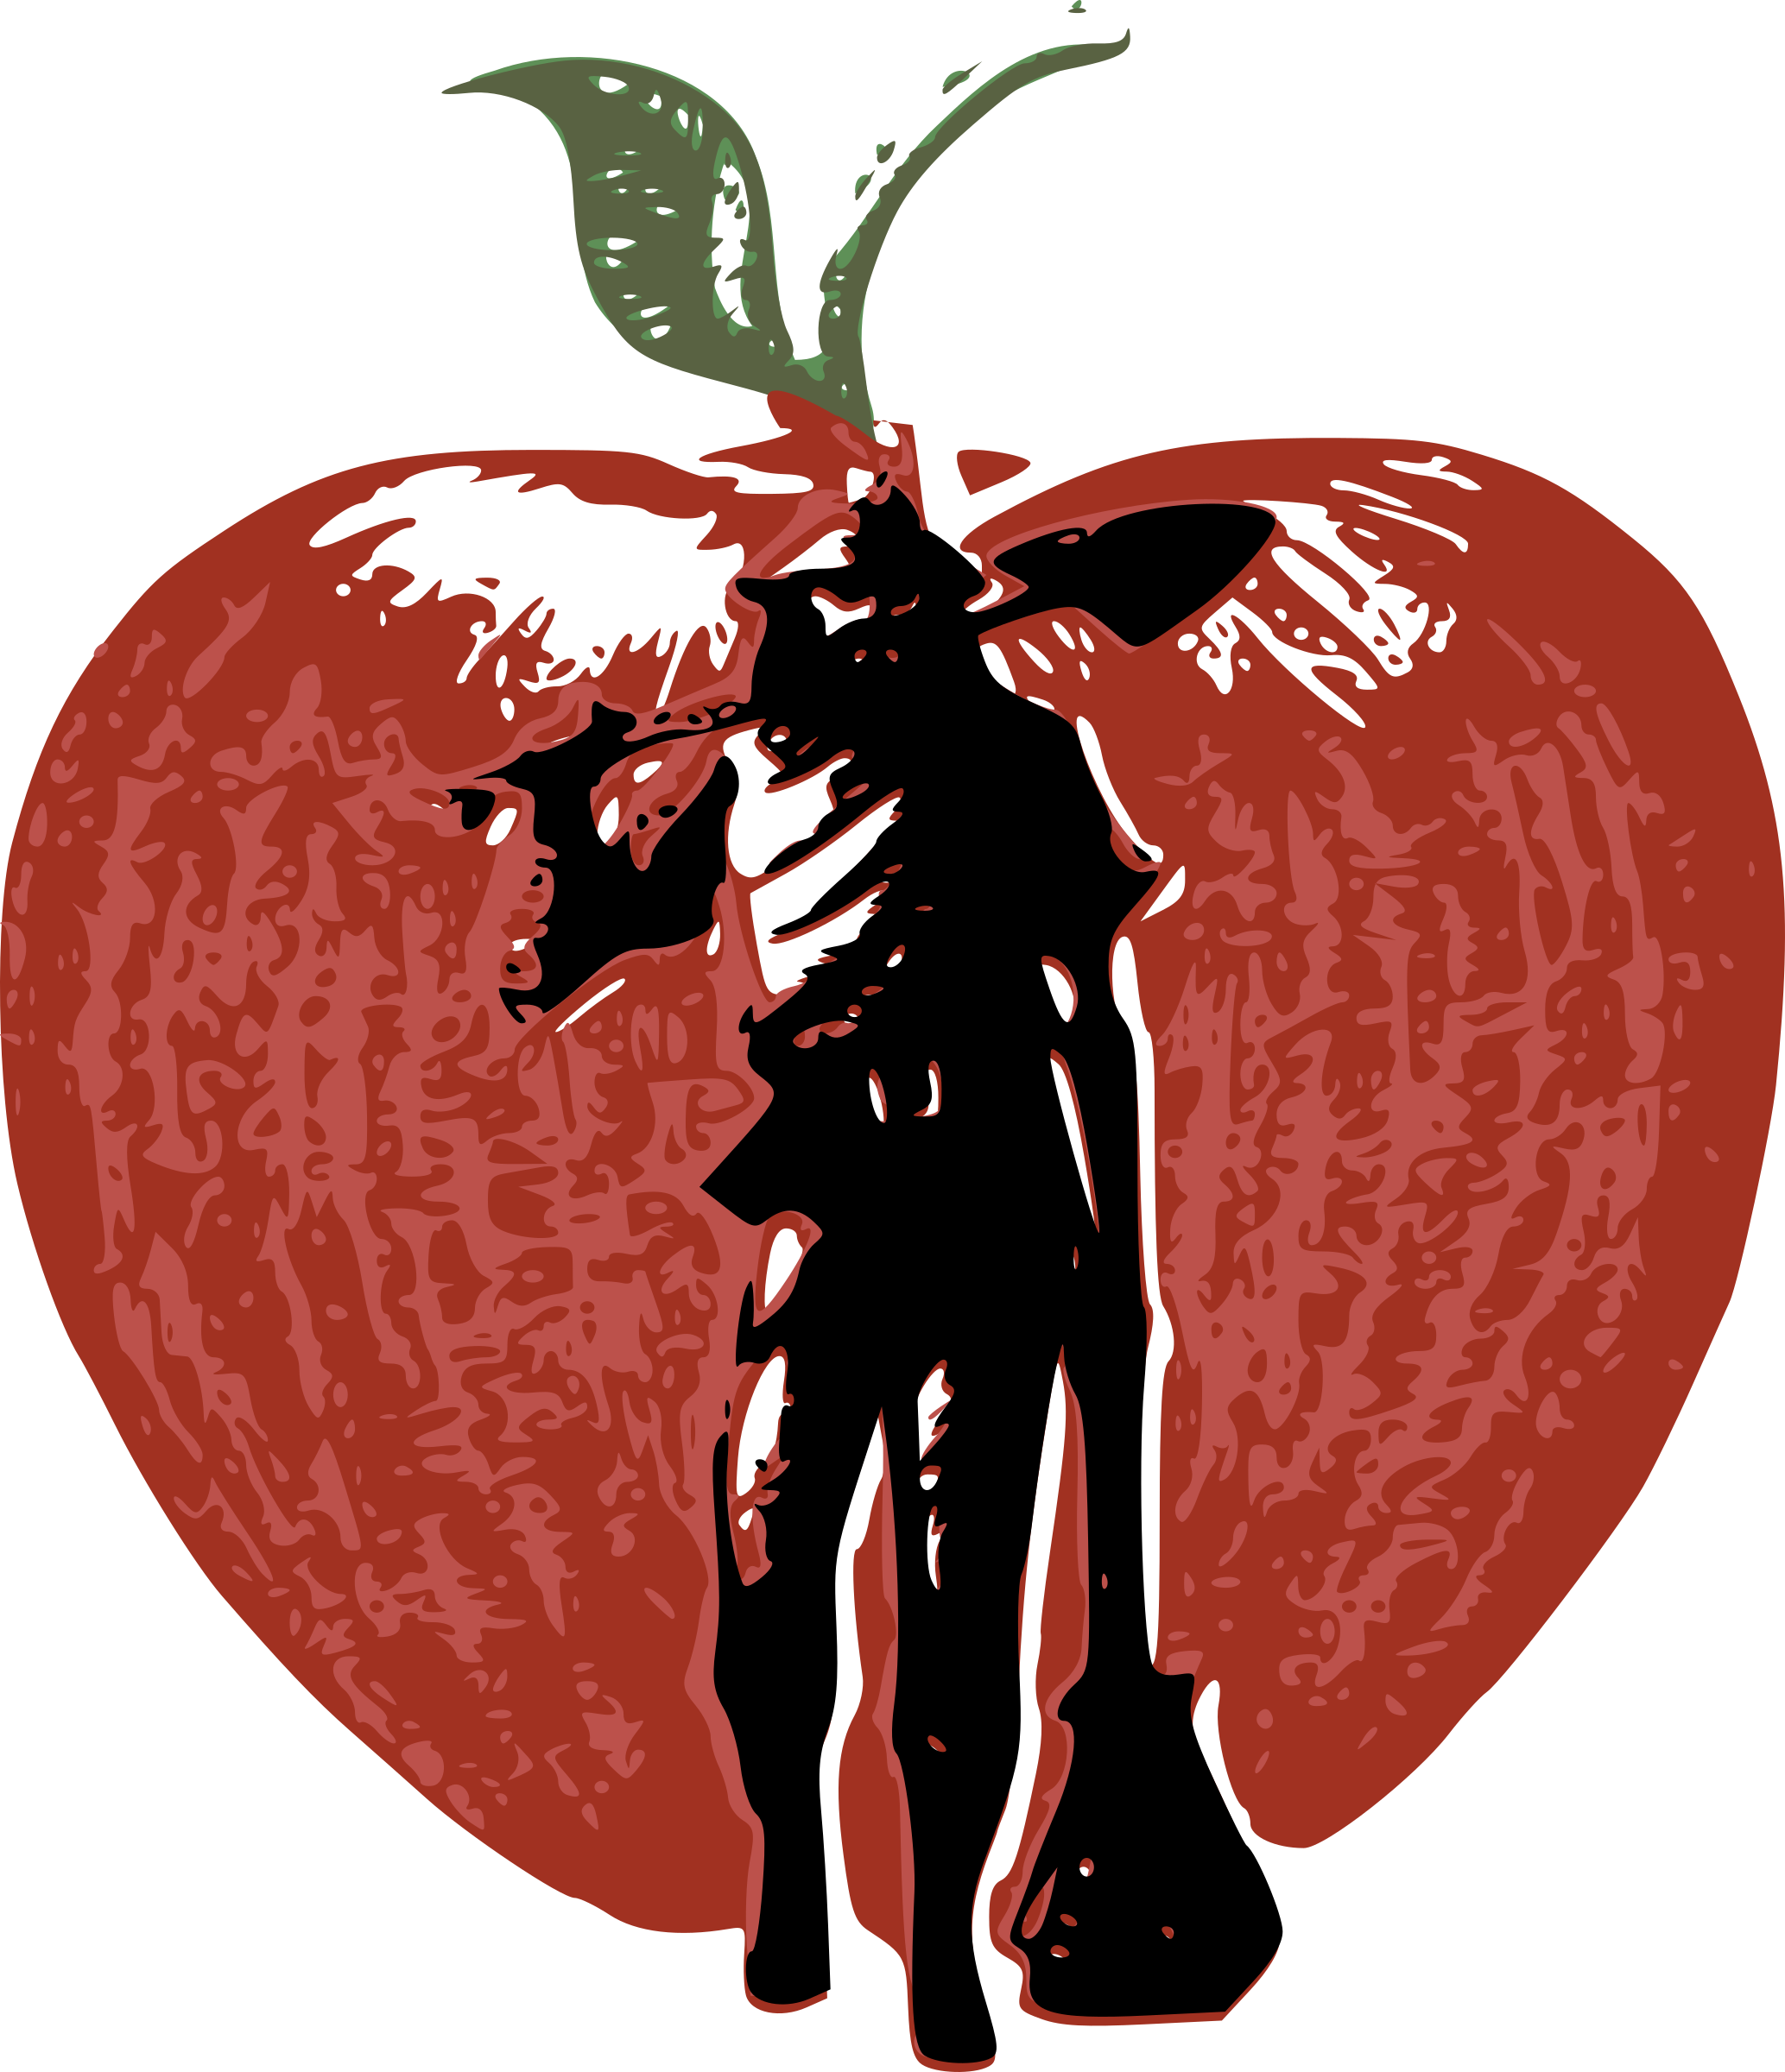 Johnny apple seed clipart transparent library Clipart - Johnny Appleseed transparent library